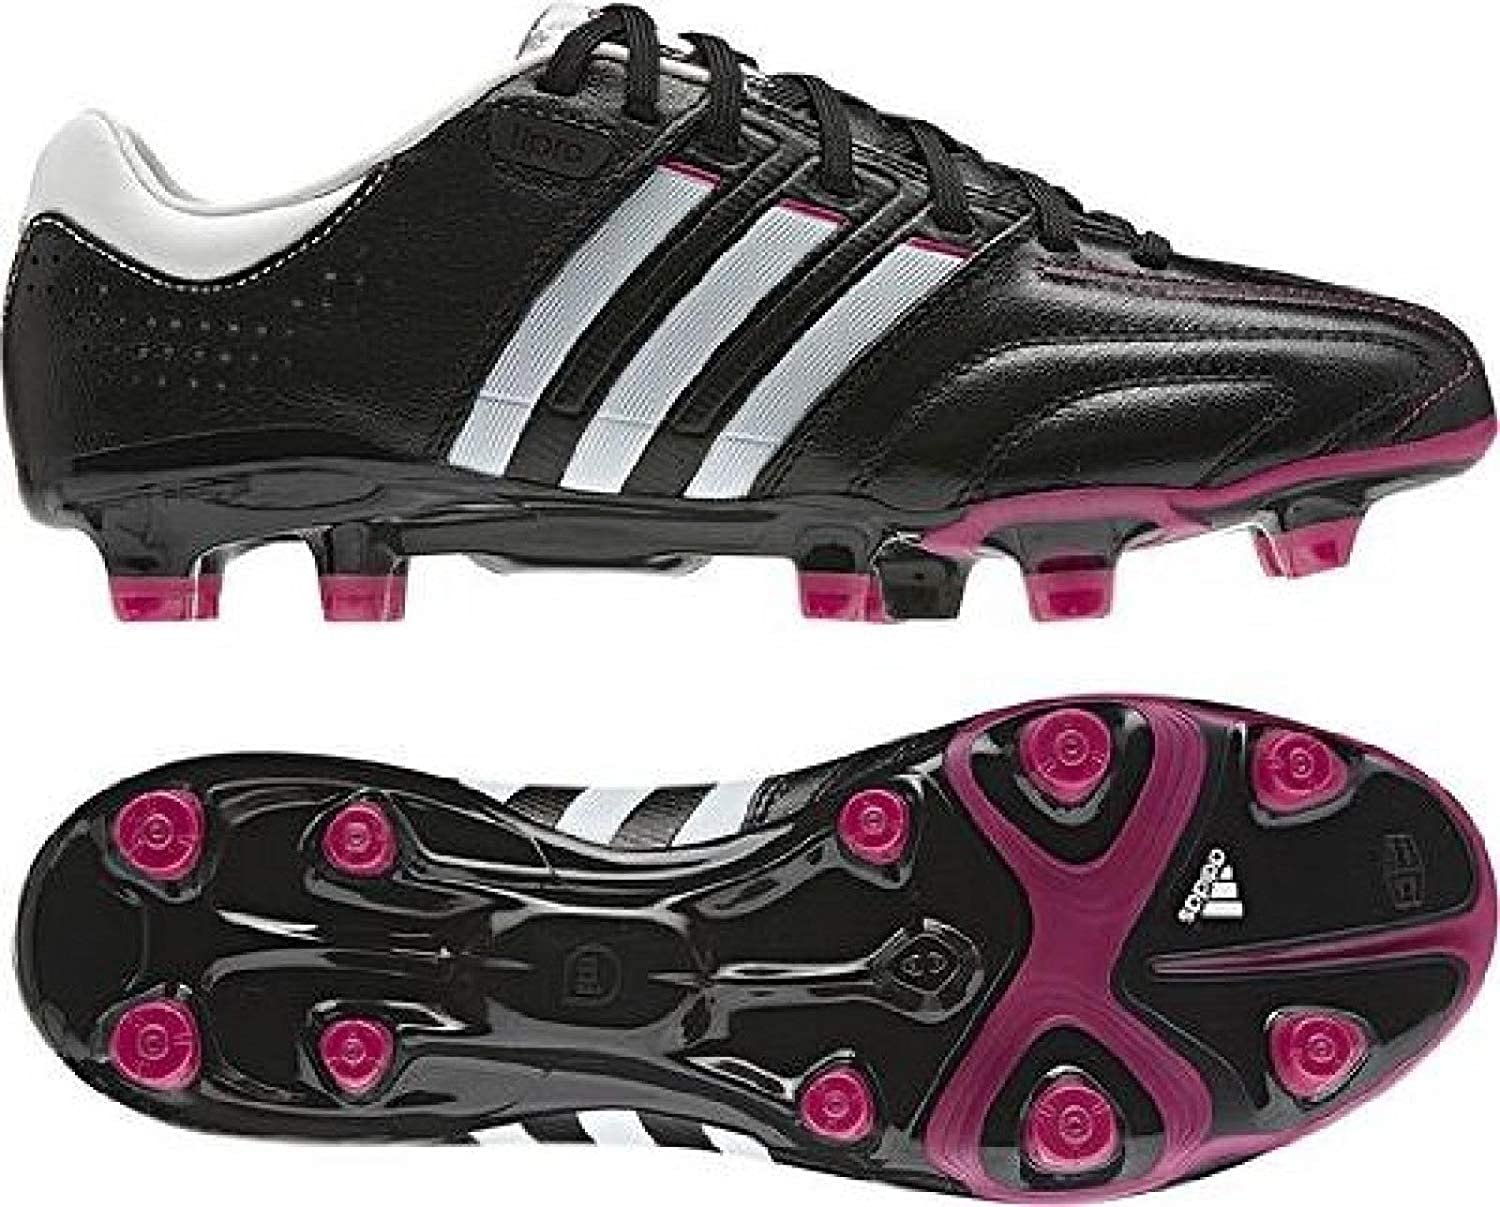 Amazon.com  Adidas Adipure Soccer Shoes Cleats 11Pro TRX FG W Size 9.5   Shoes 715195438